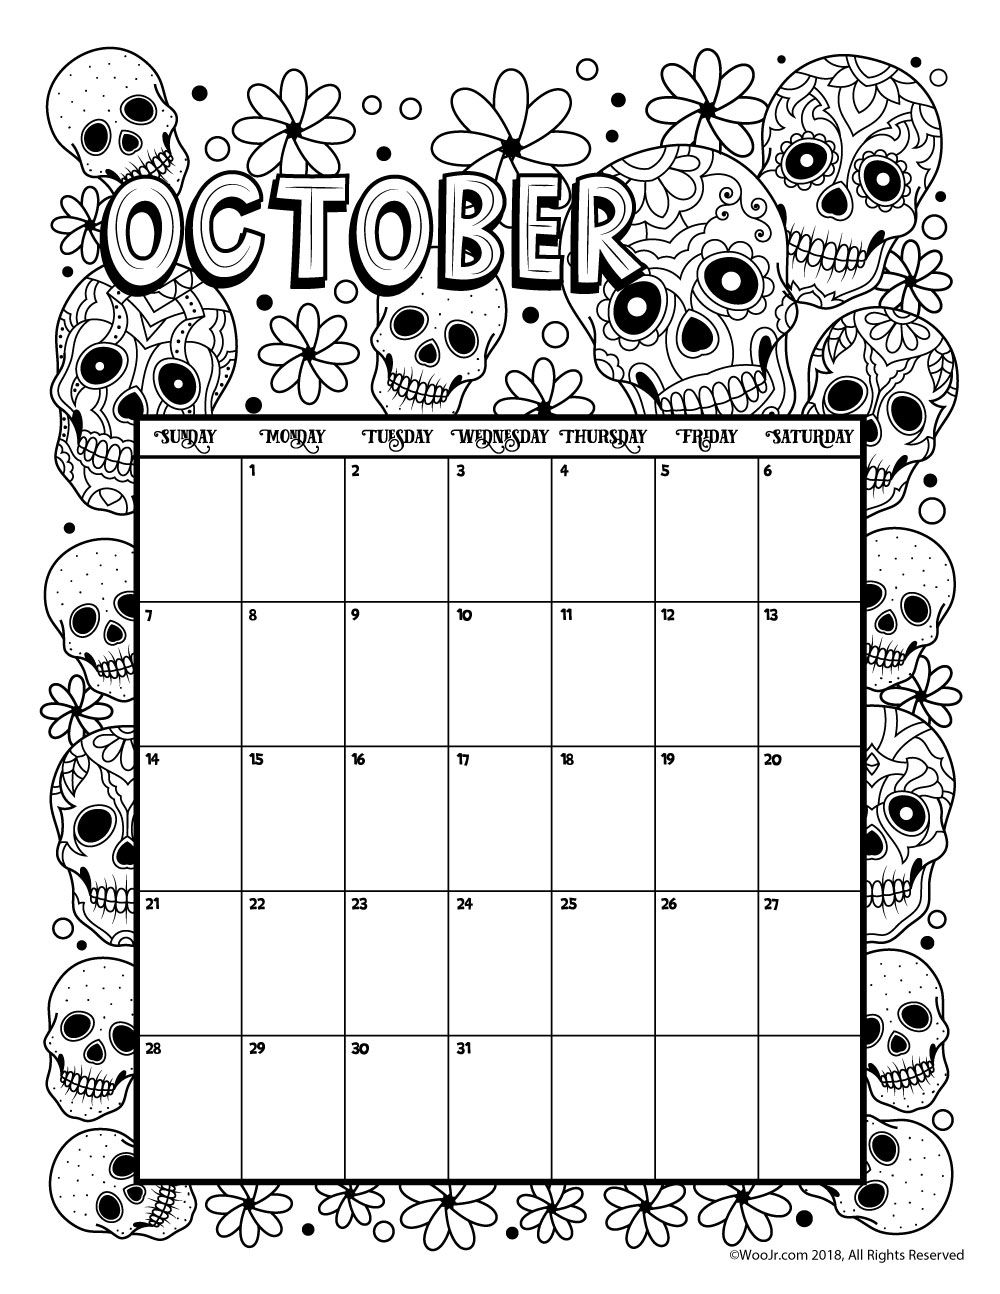 Coloring Book : Remarkable Coloring Calendar For Adults Free